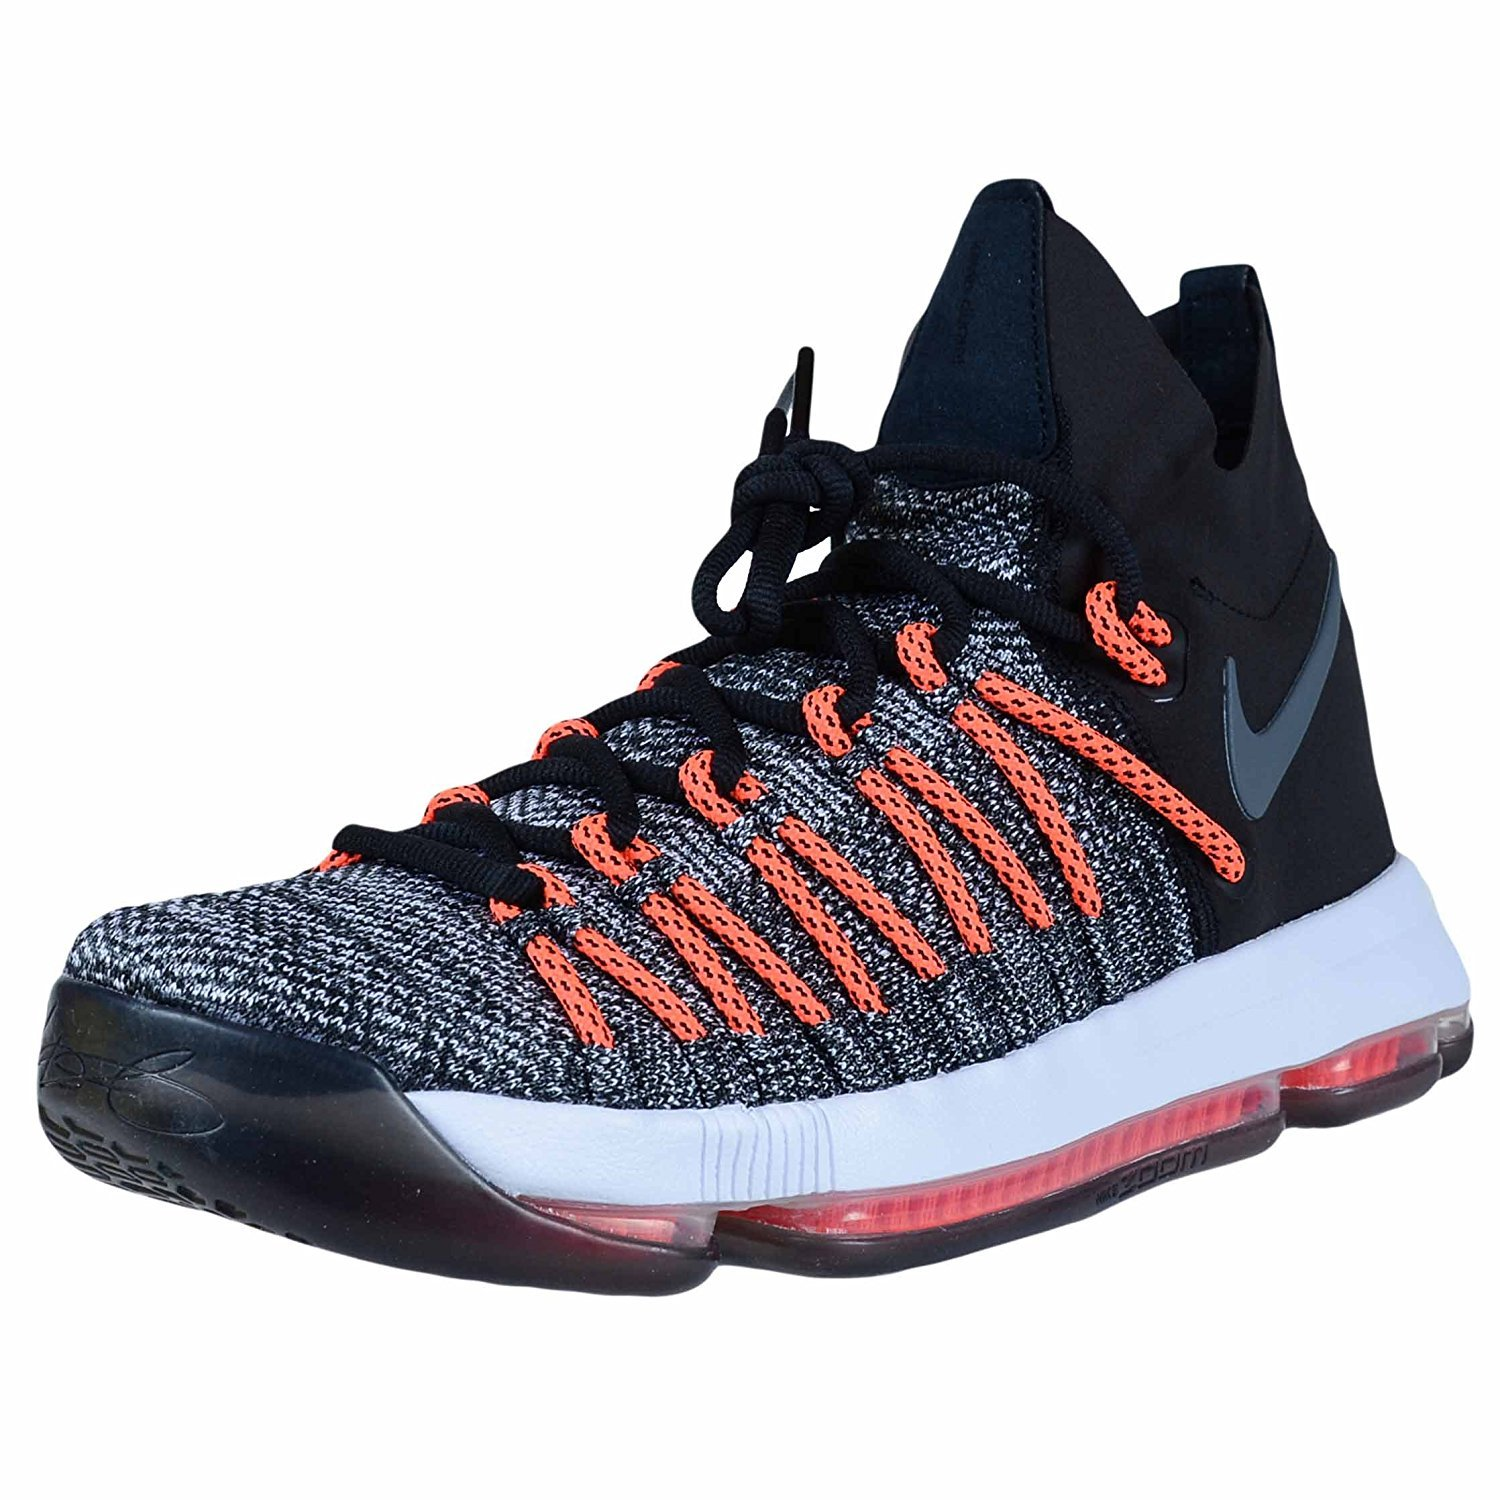 best website 32146 4e024 Amazon.com   NIKE Zoom KD 9 Men s Basketball Shoes (11, Black White-Dark  Grey)   Basketball